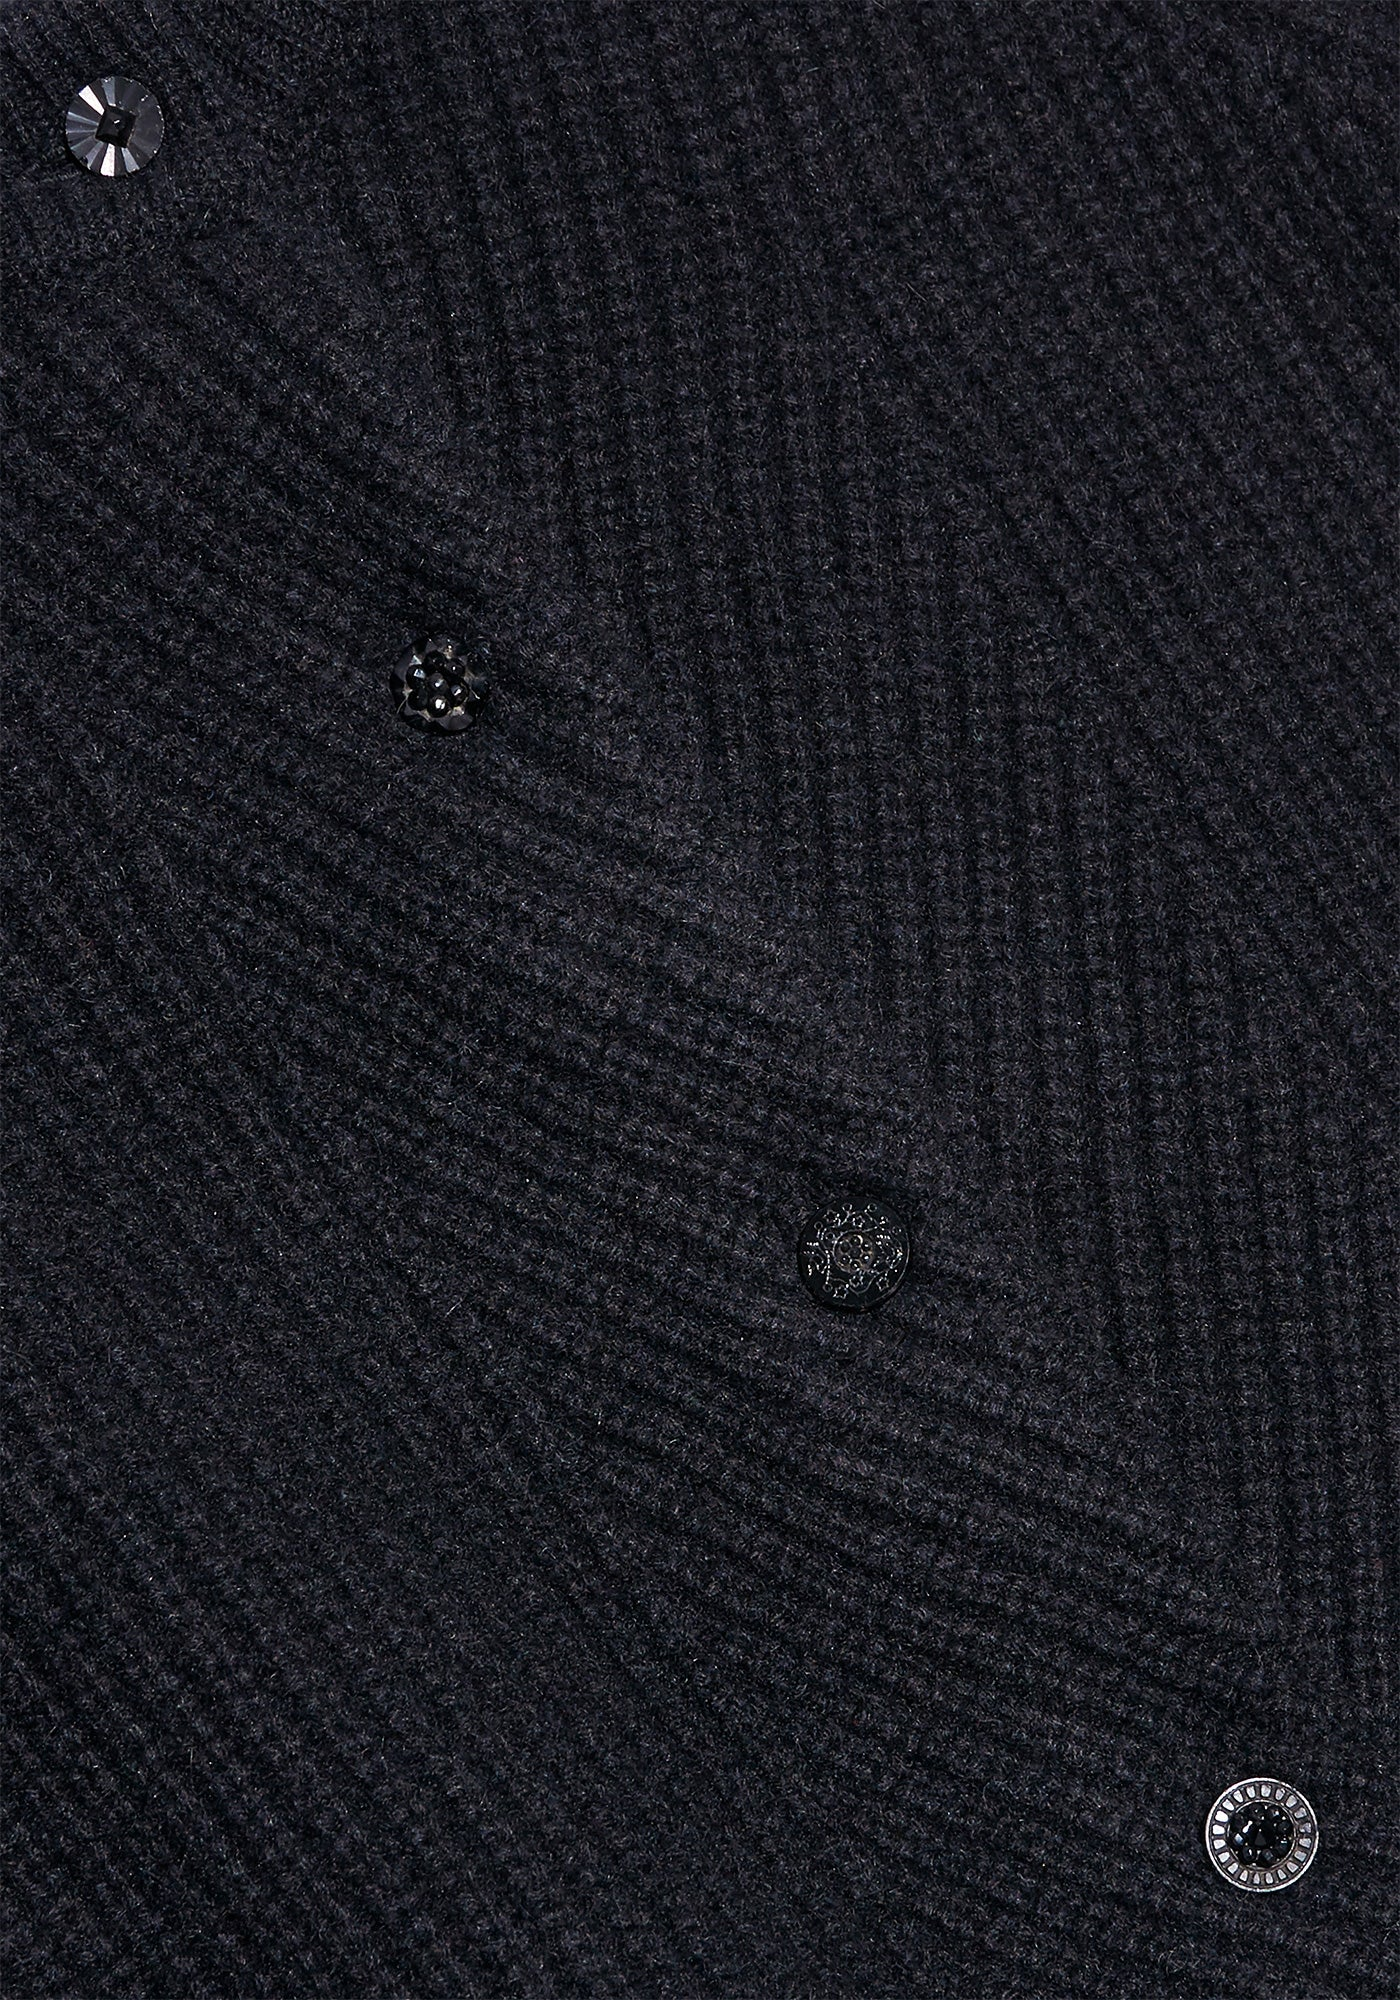 Black Cashmere Cardigan - S - Black Glass 02